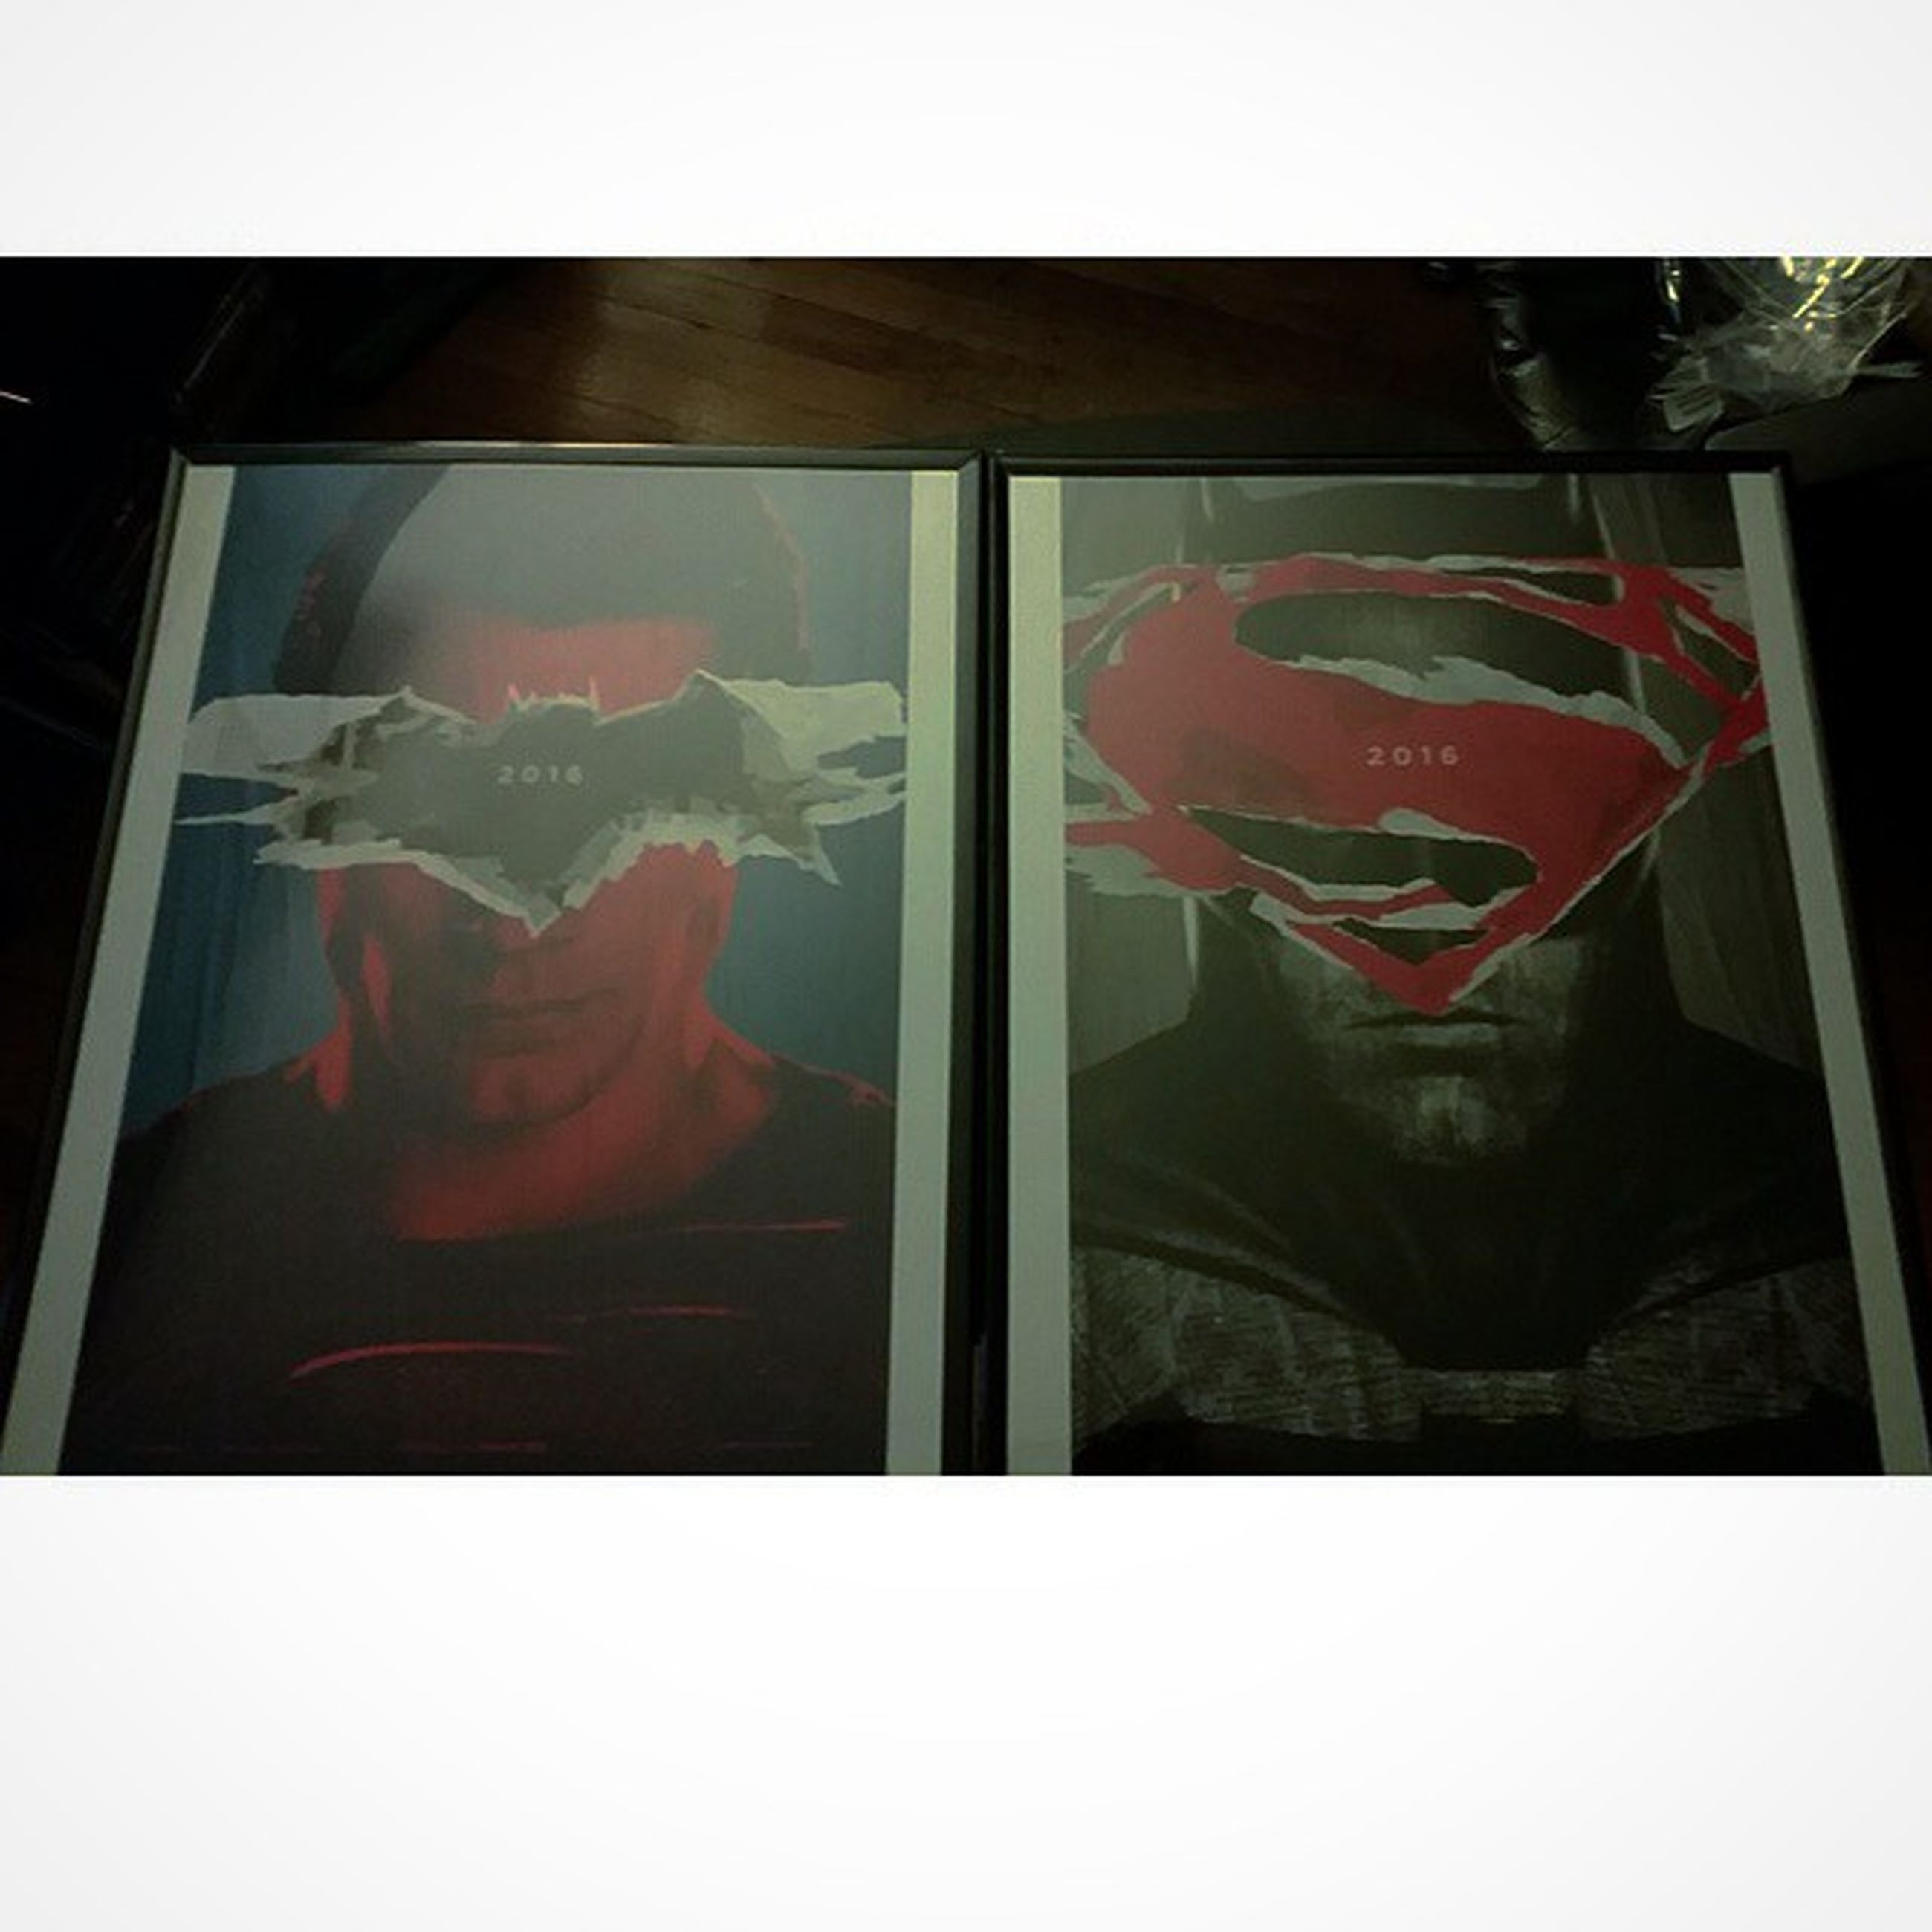 transfer print, indoors, auto post production filter, human representation, glass - material, art, art and craft, creativity, transparent, reflection, window, close-up, home interior, front view, animal representation, red, still life, no people